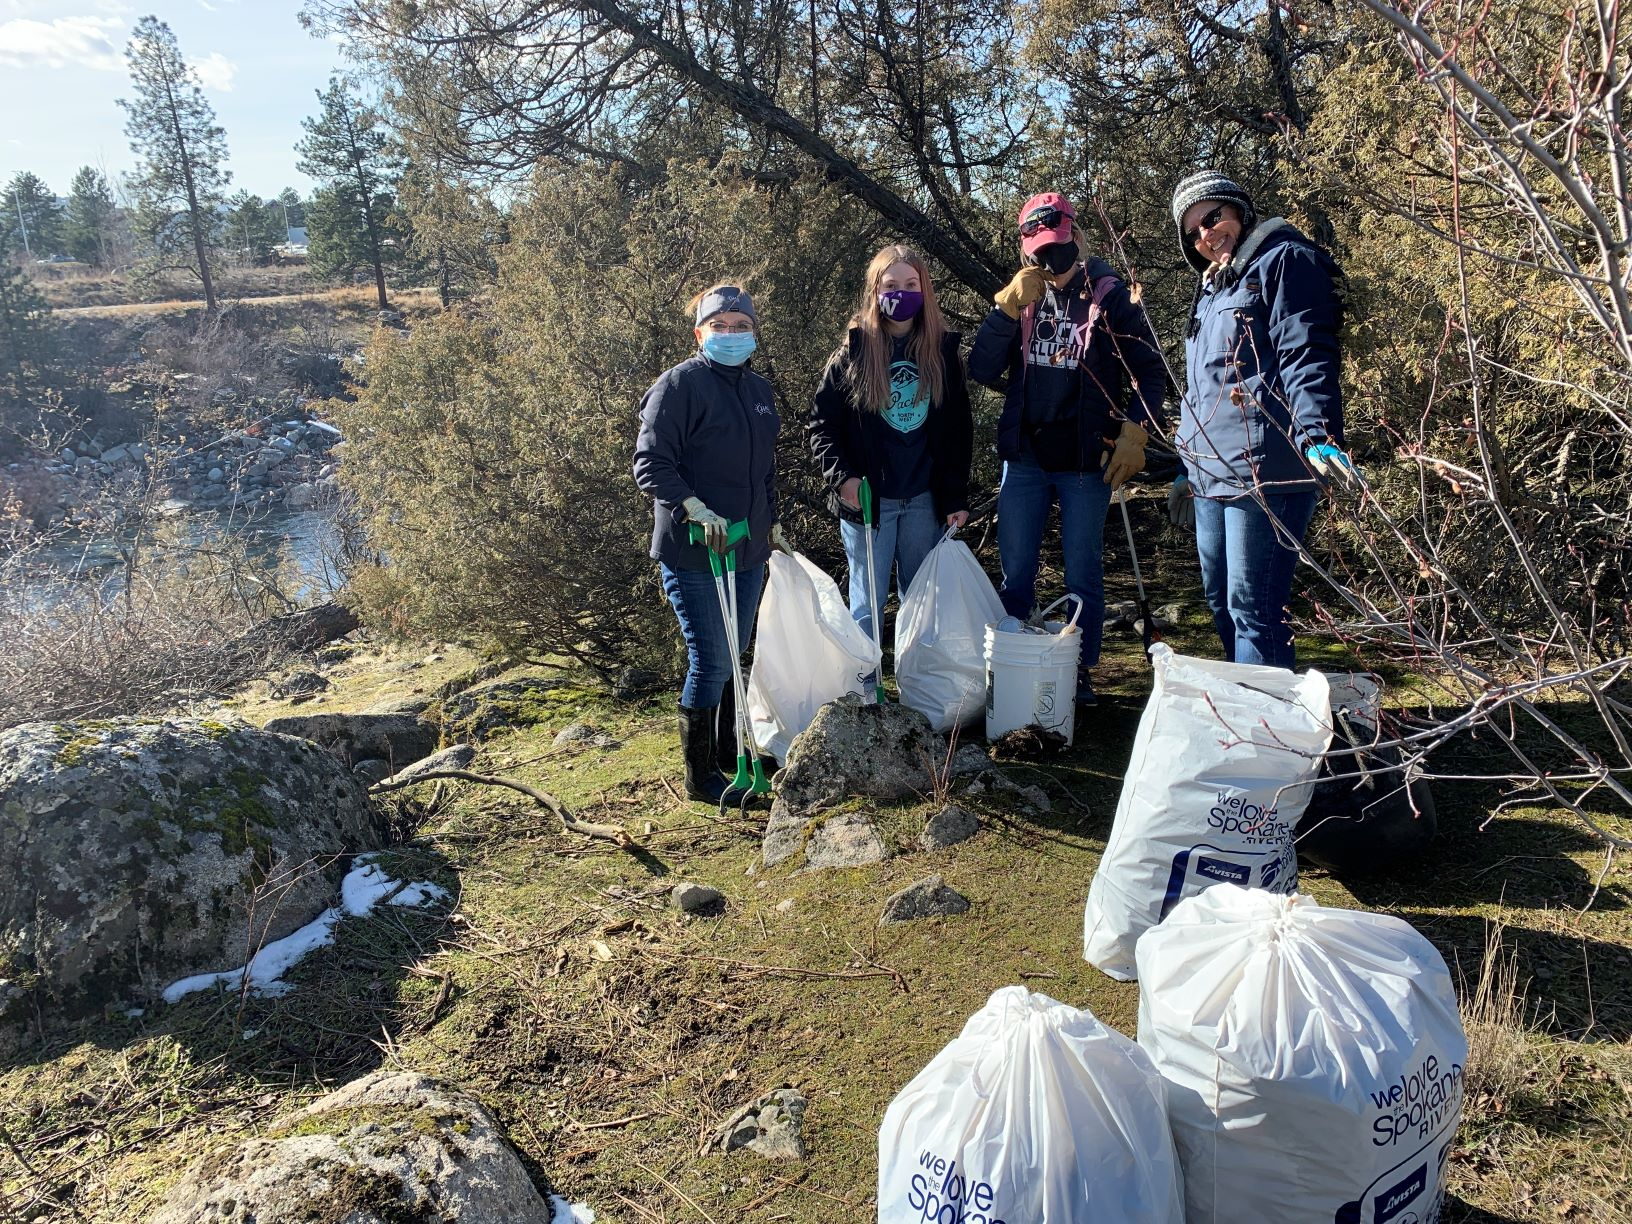 Four people volunteering during the Spokane River Clean-Up, wearing and holding pick-up pocking tools, and standing next to a large white bucket and four large plastic bags filled with collected trash.